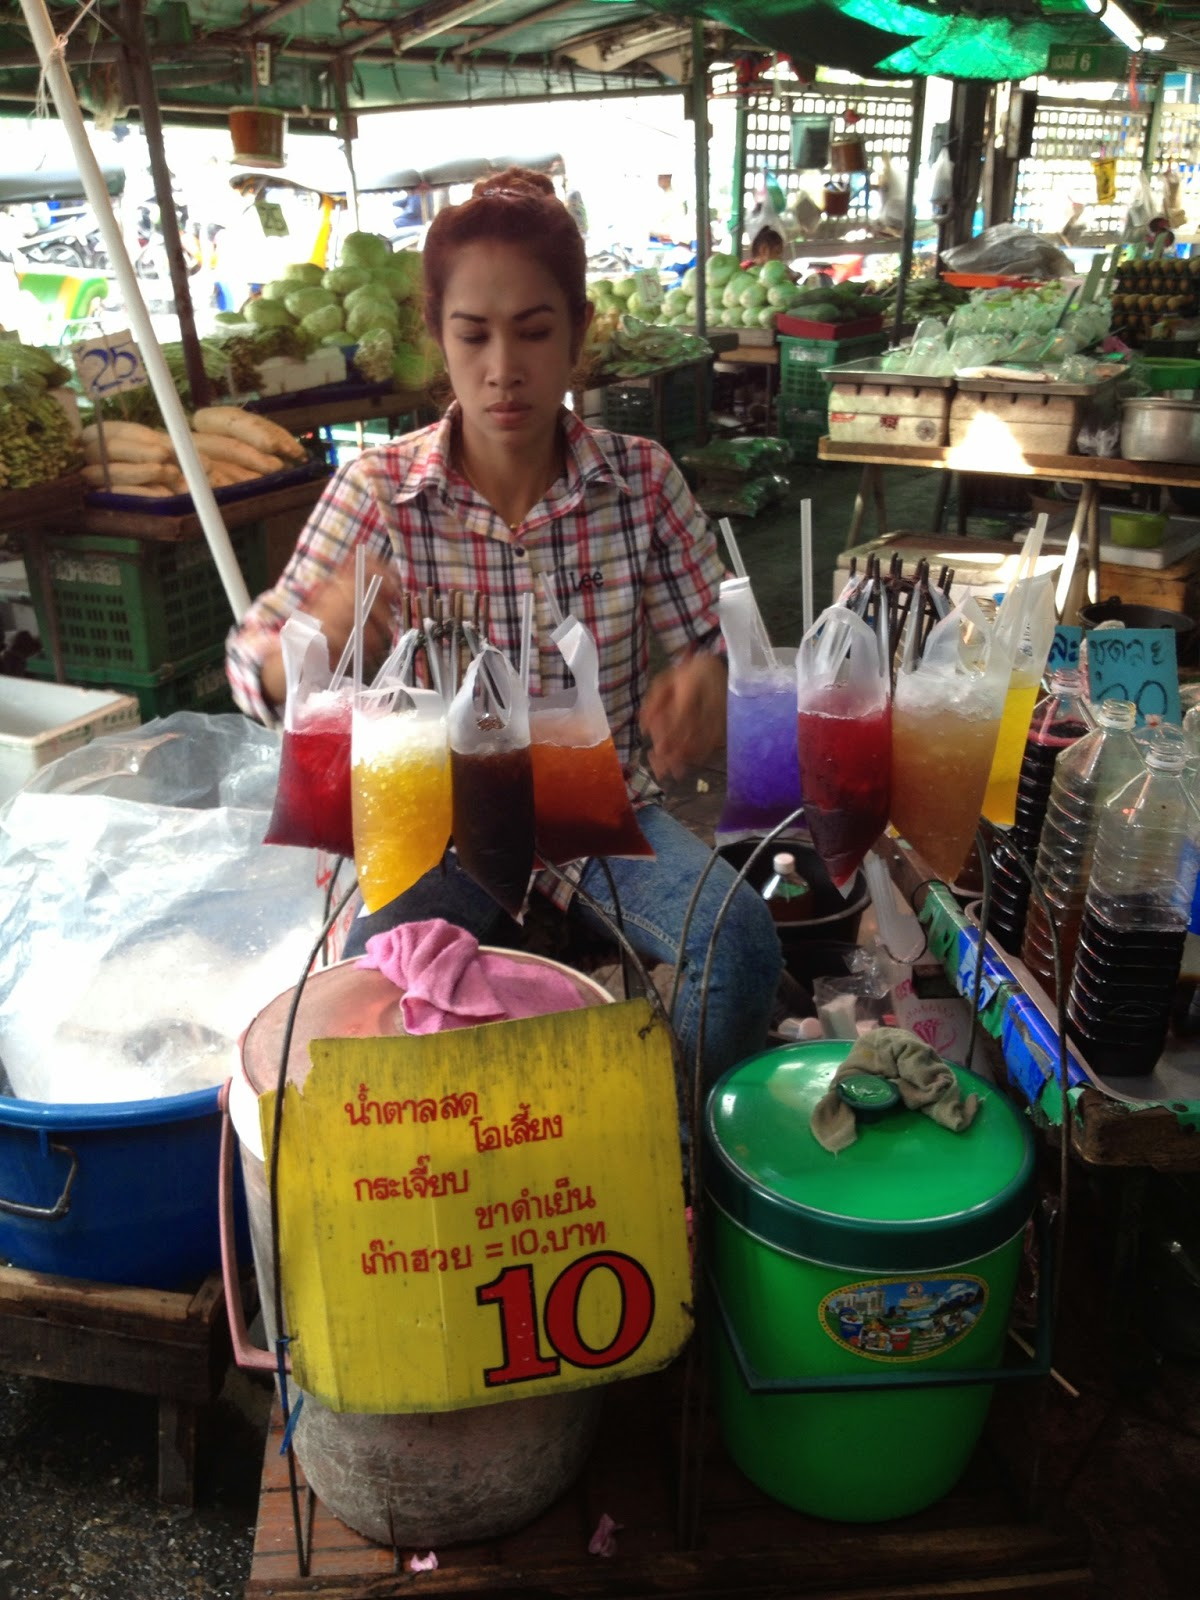 Bangkok - Wet market - You can buy drinks served in plastic bags